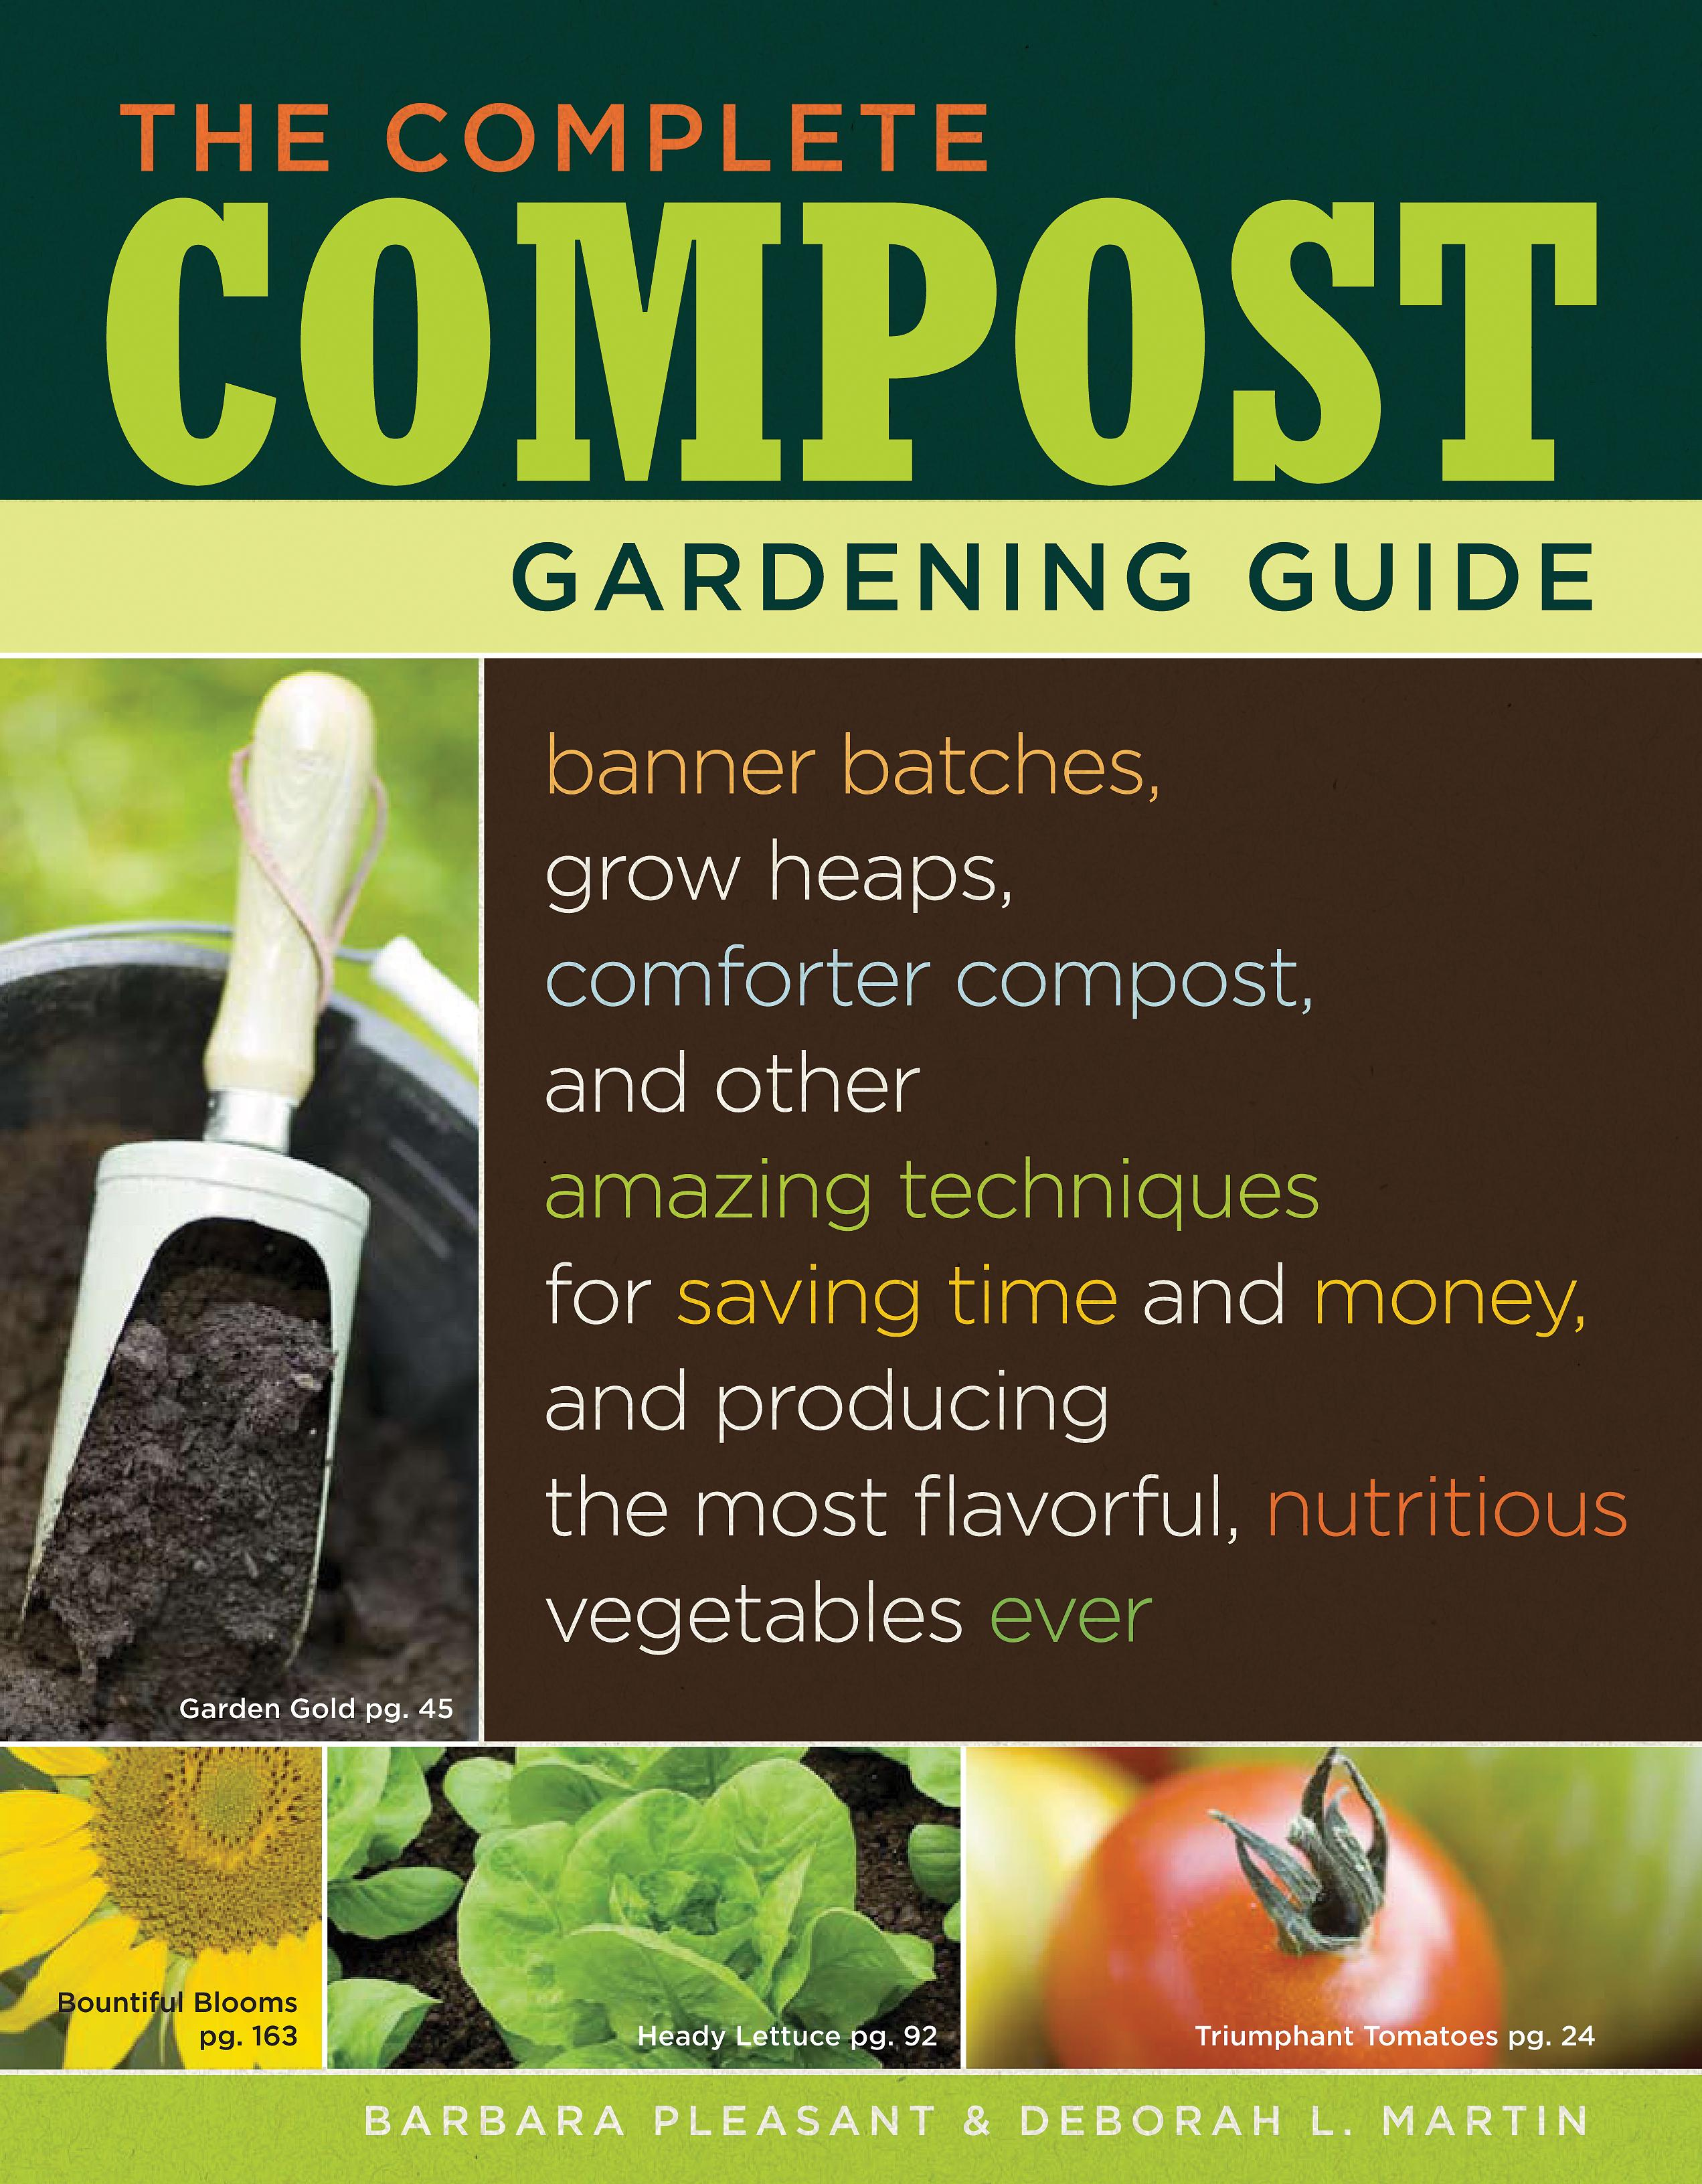 The Complete Compost Gardening Guide: Banner batches, grow heaps, comforter compost, and other amazing techniques for saving time and money, and produ EB9781603421836